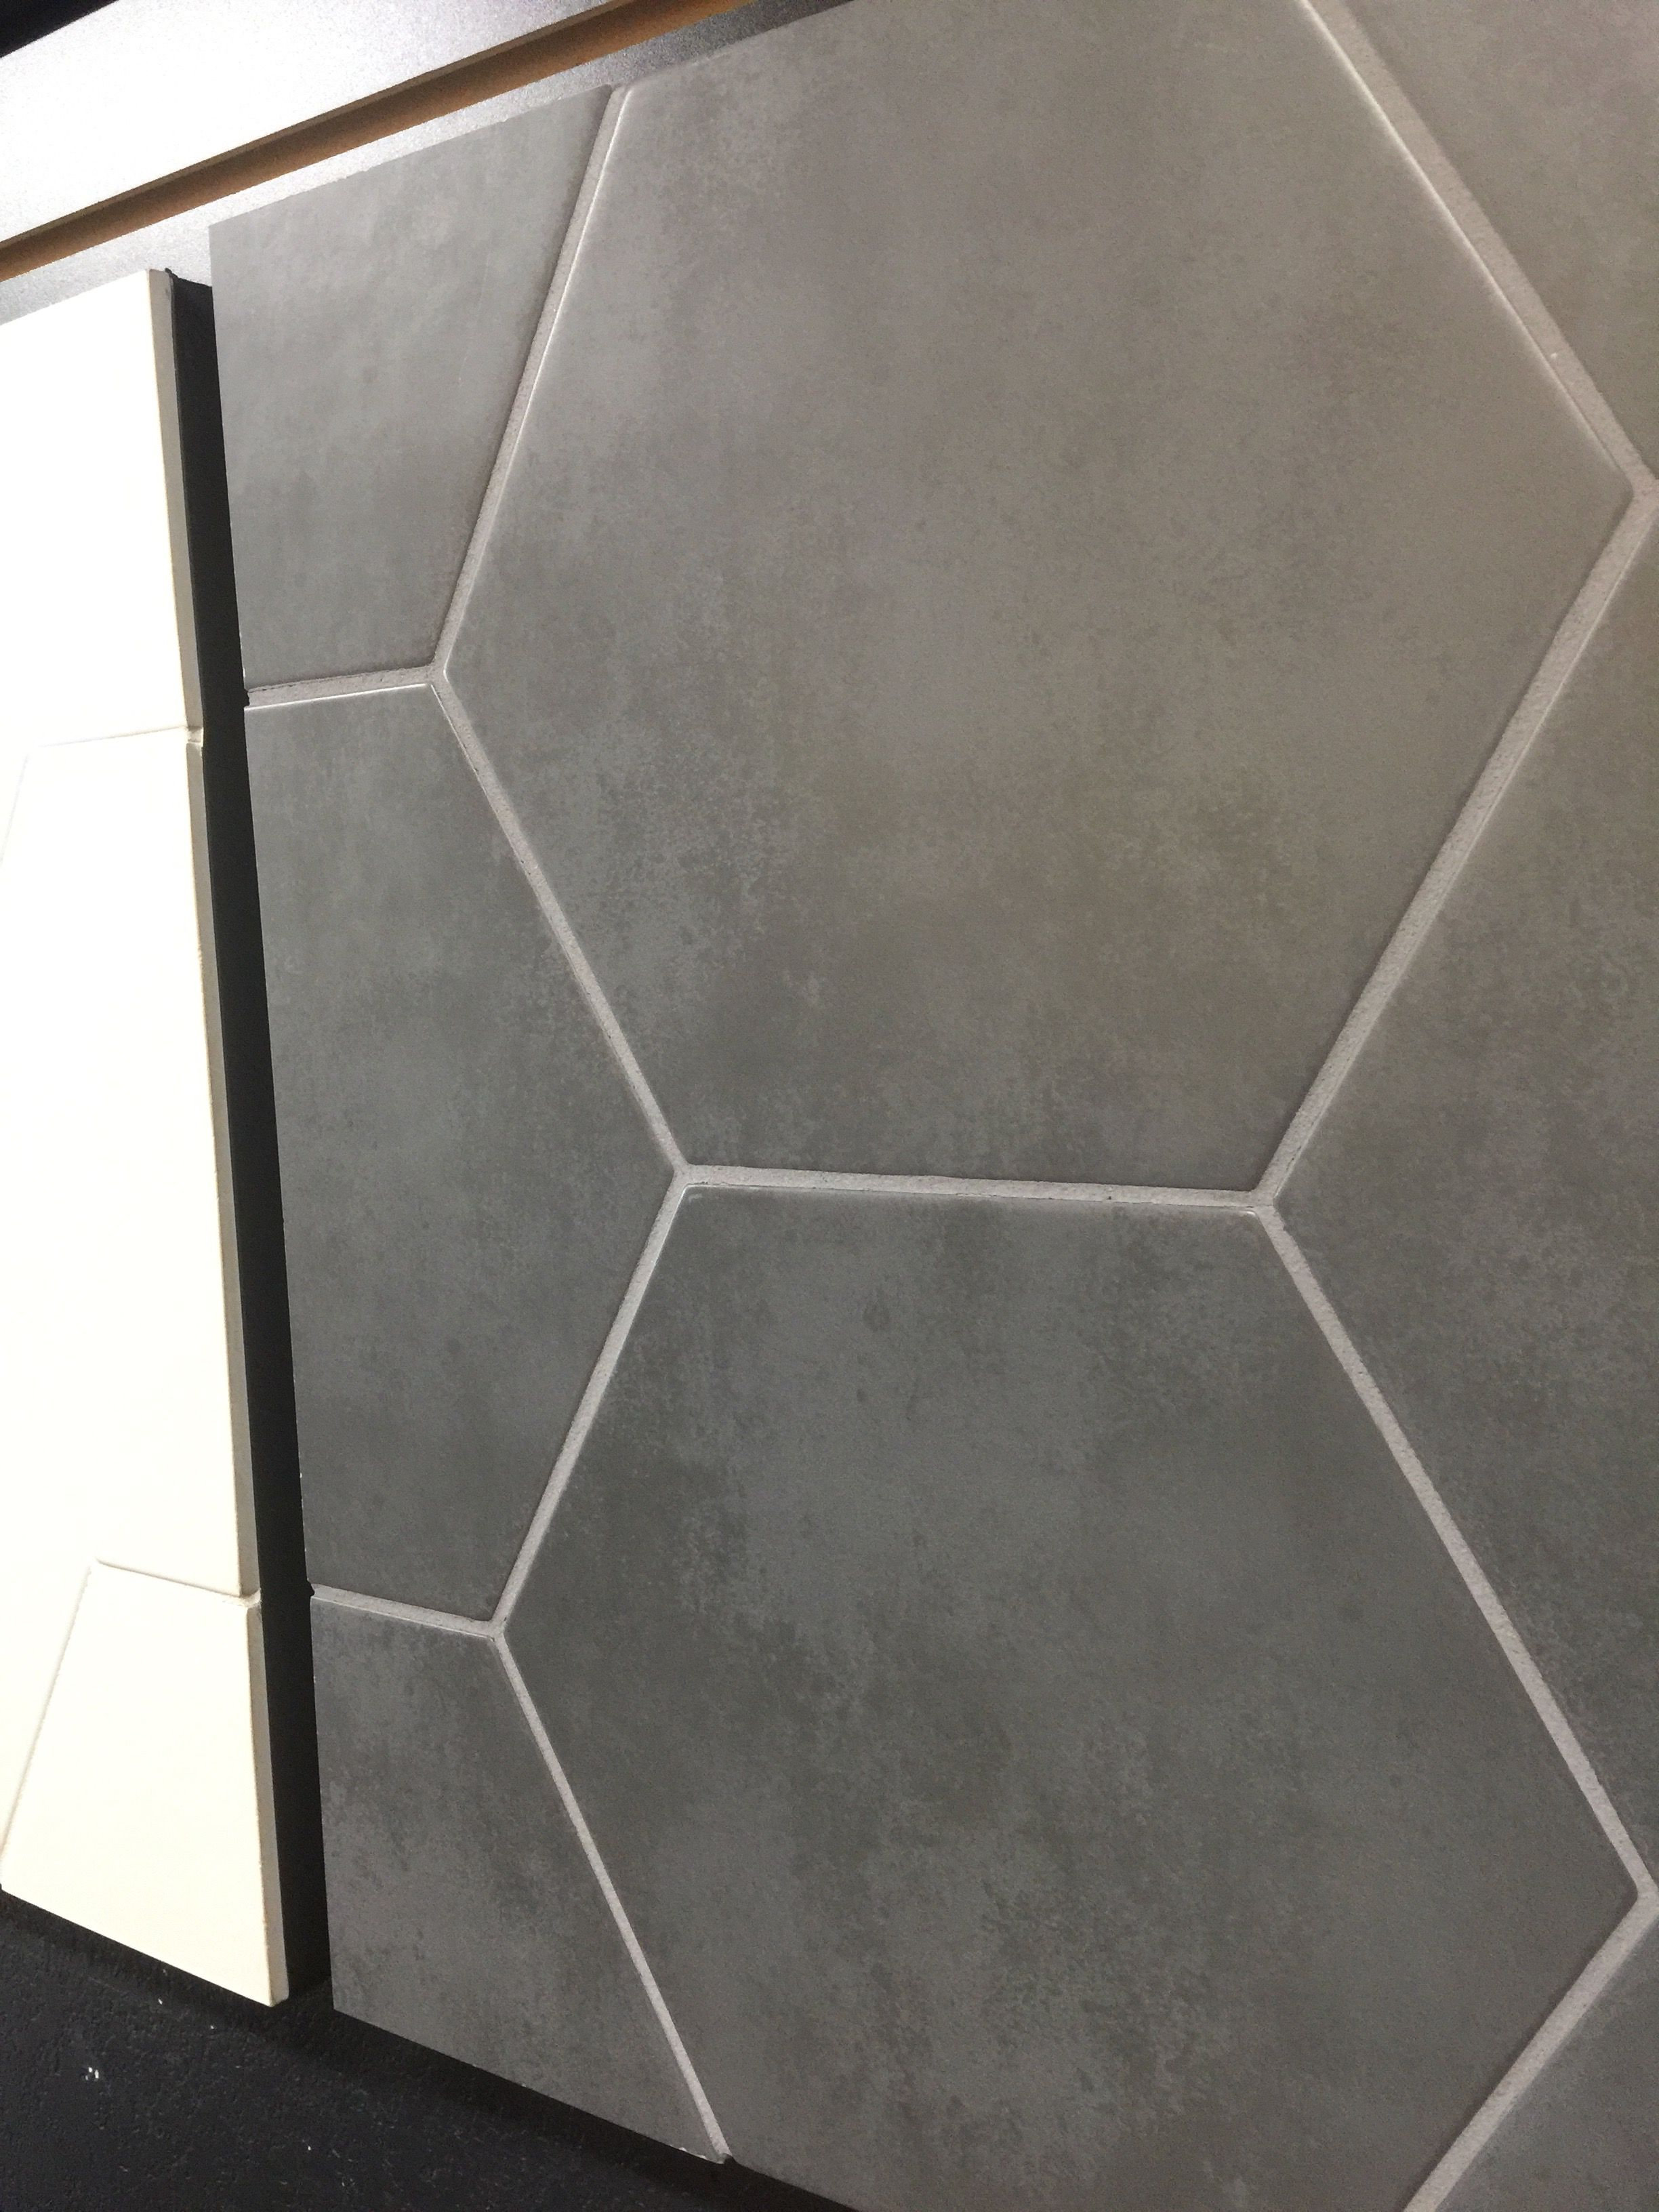 Large Format Hexagon Floor Tile In A Burnished Metal Look And Matte Finish For Hall Bath Floor Large Hexagon Floor Tile Hexagon Tile Floor Tile Floor